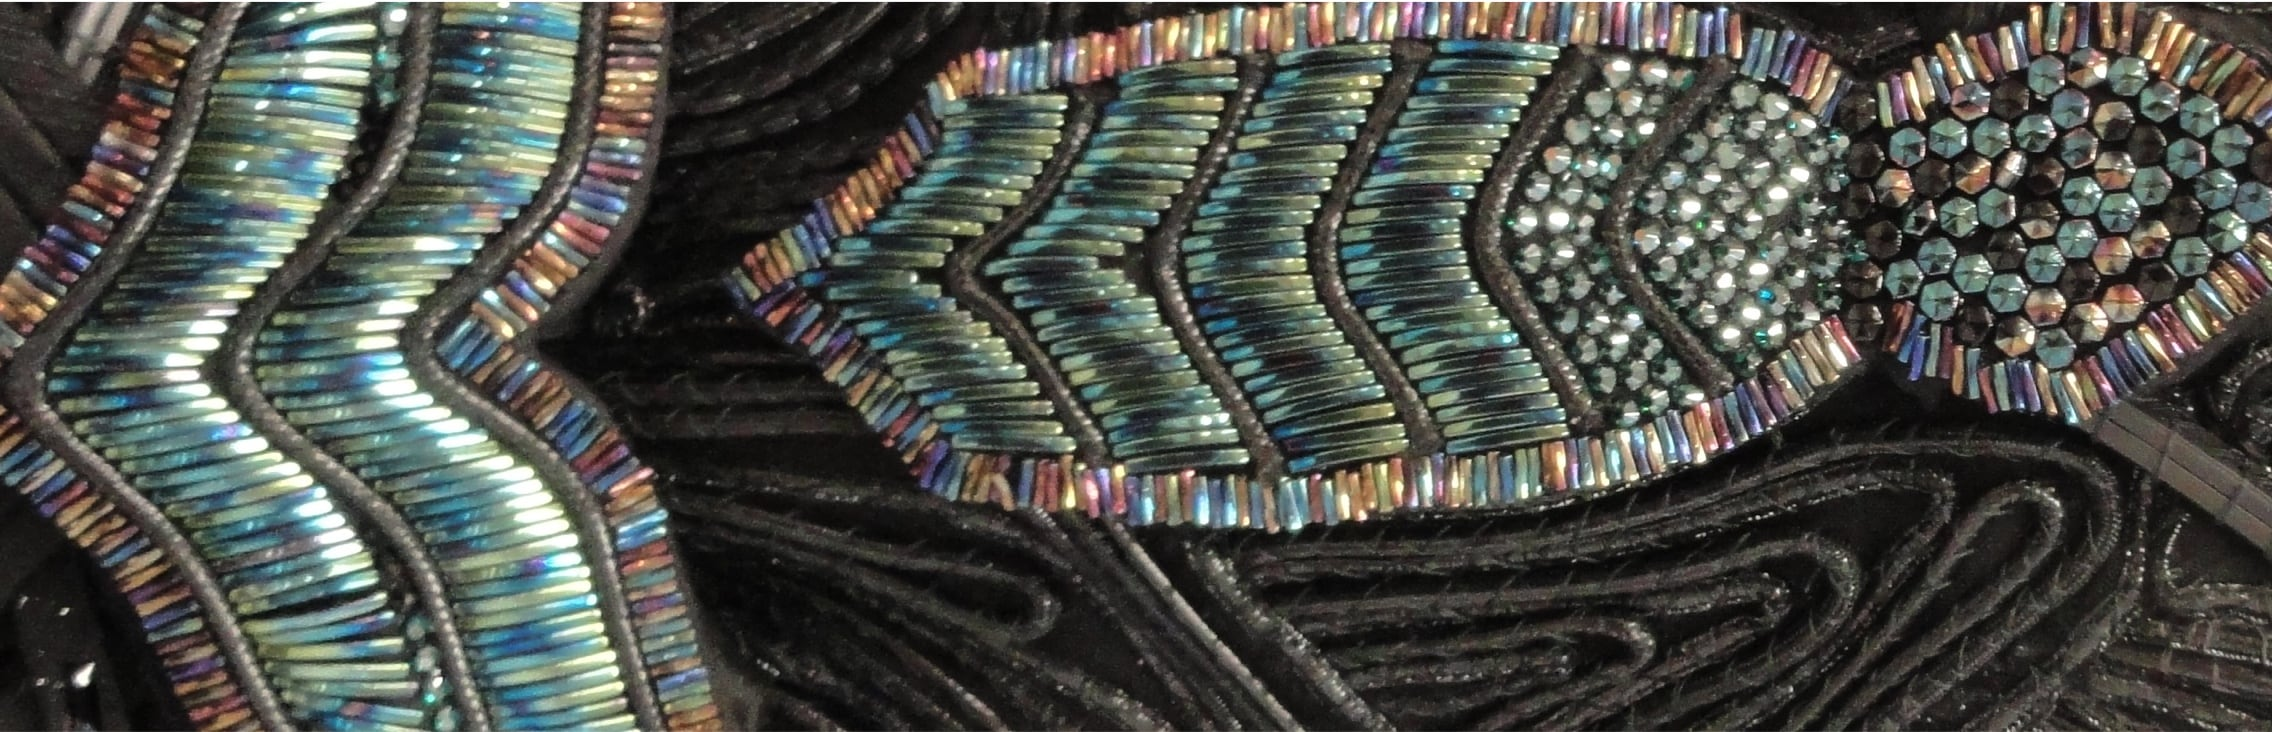 The Wiz Live header image black fabric with colorful beads